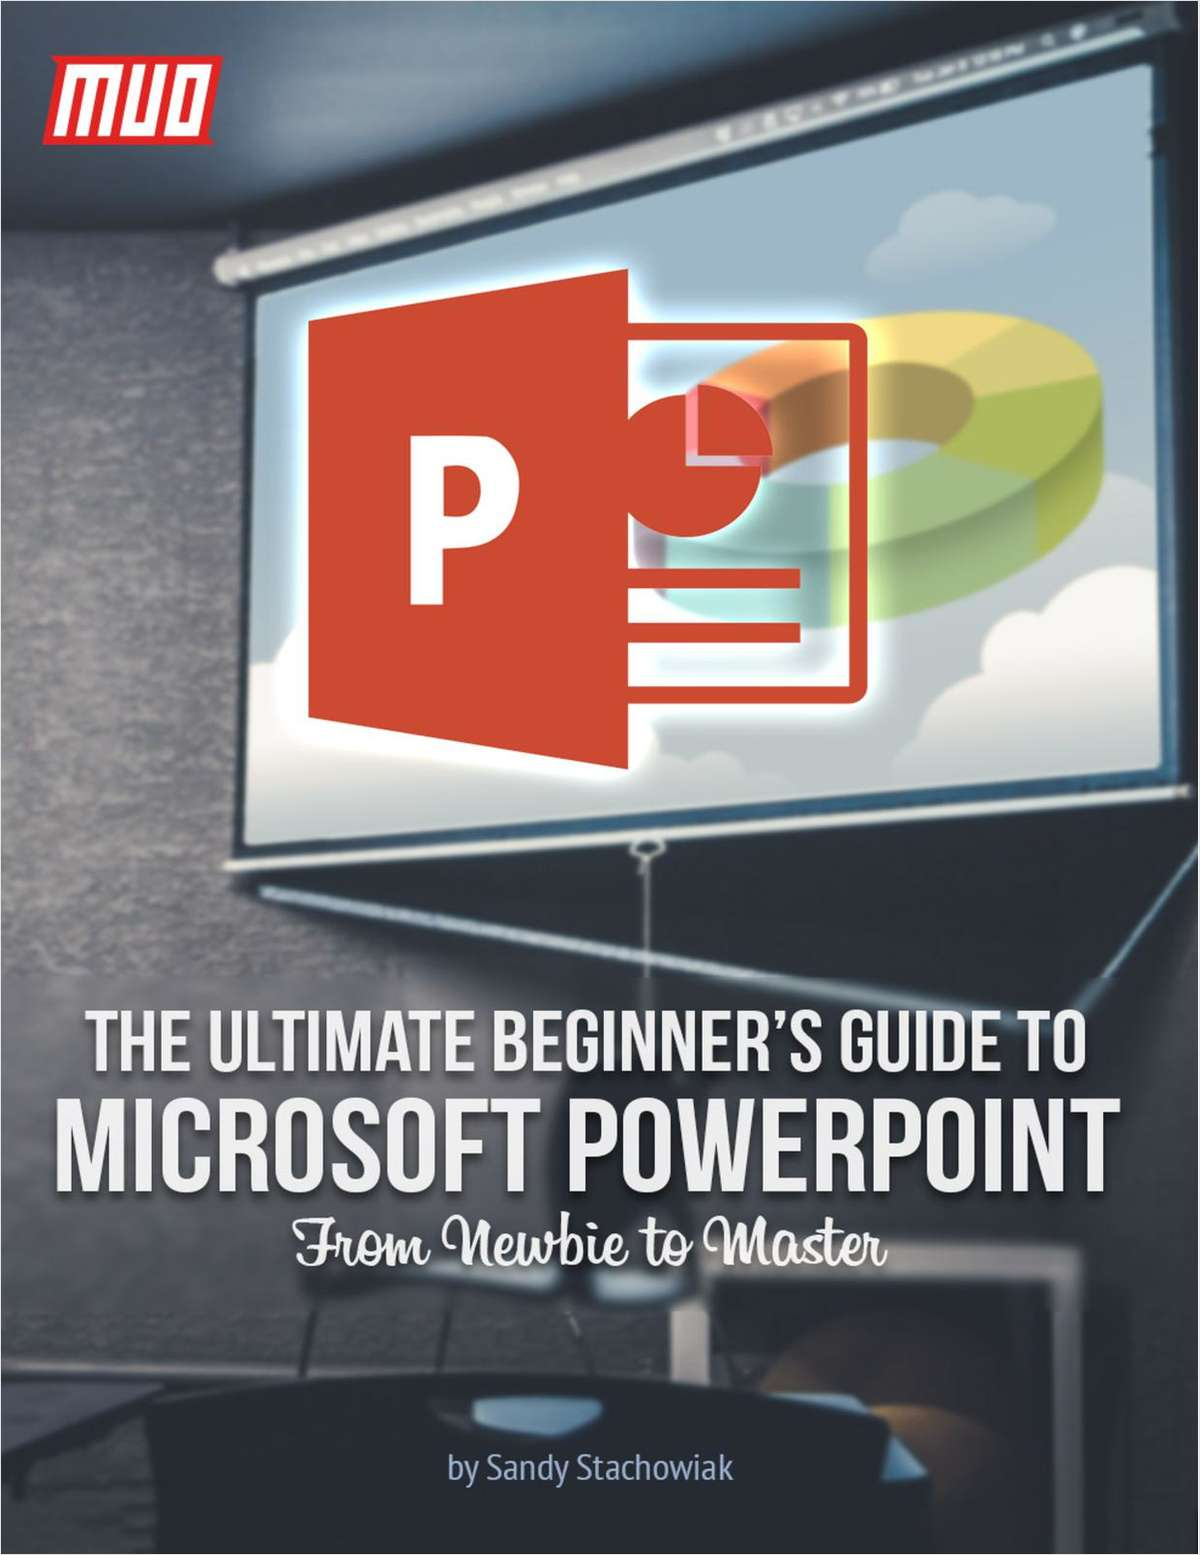 The Ultimate Beginner's Guide to Microsoft PowerPoint